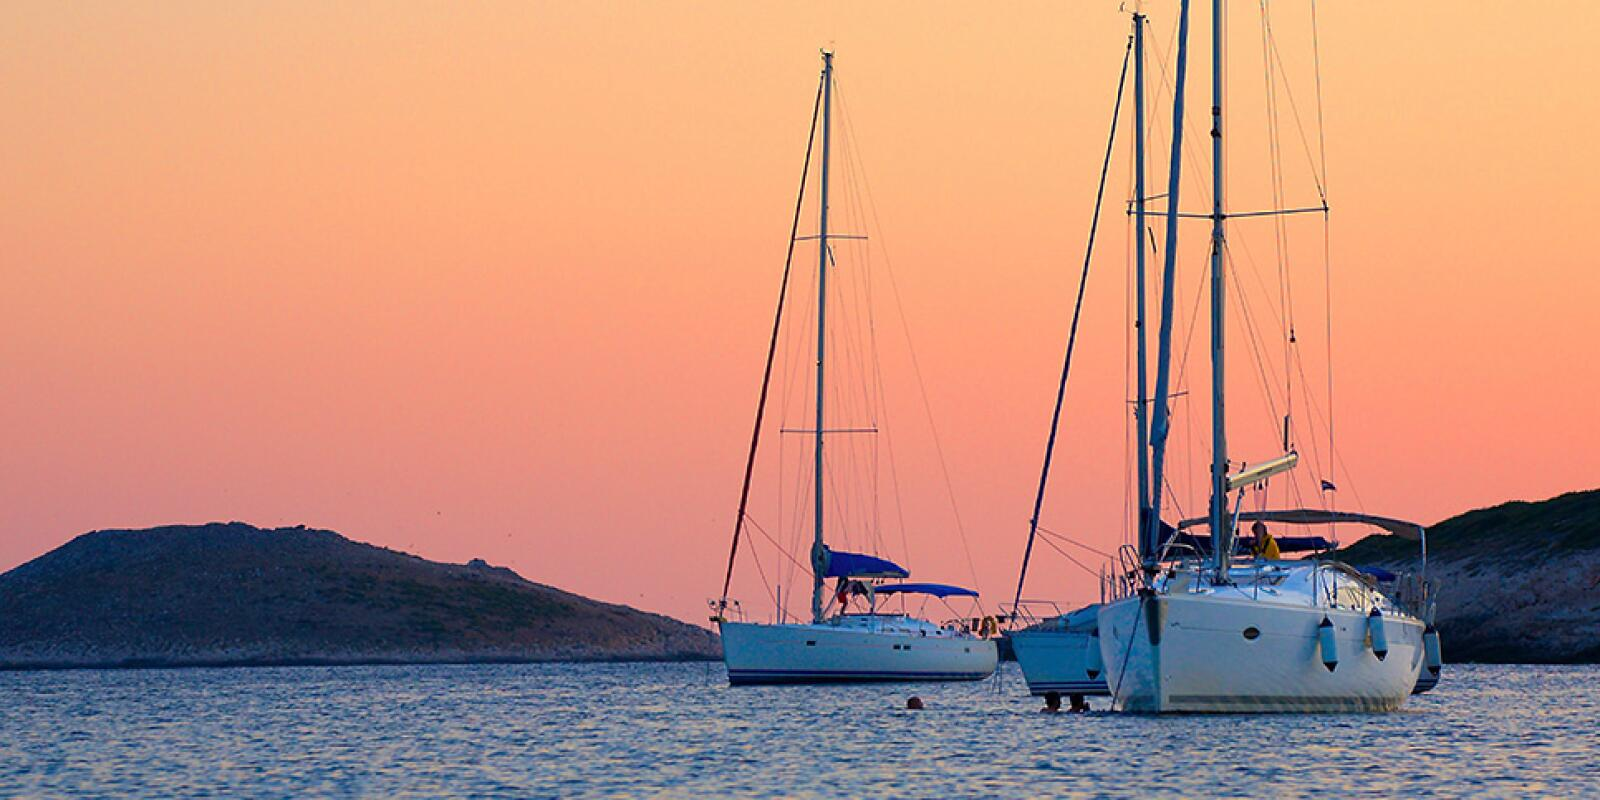 Courses & regatta: Sailing holidays in Corsica